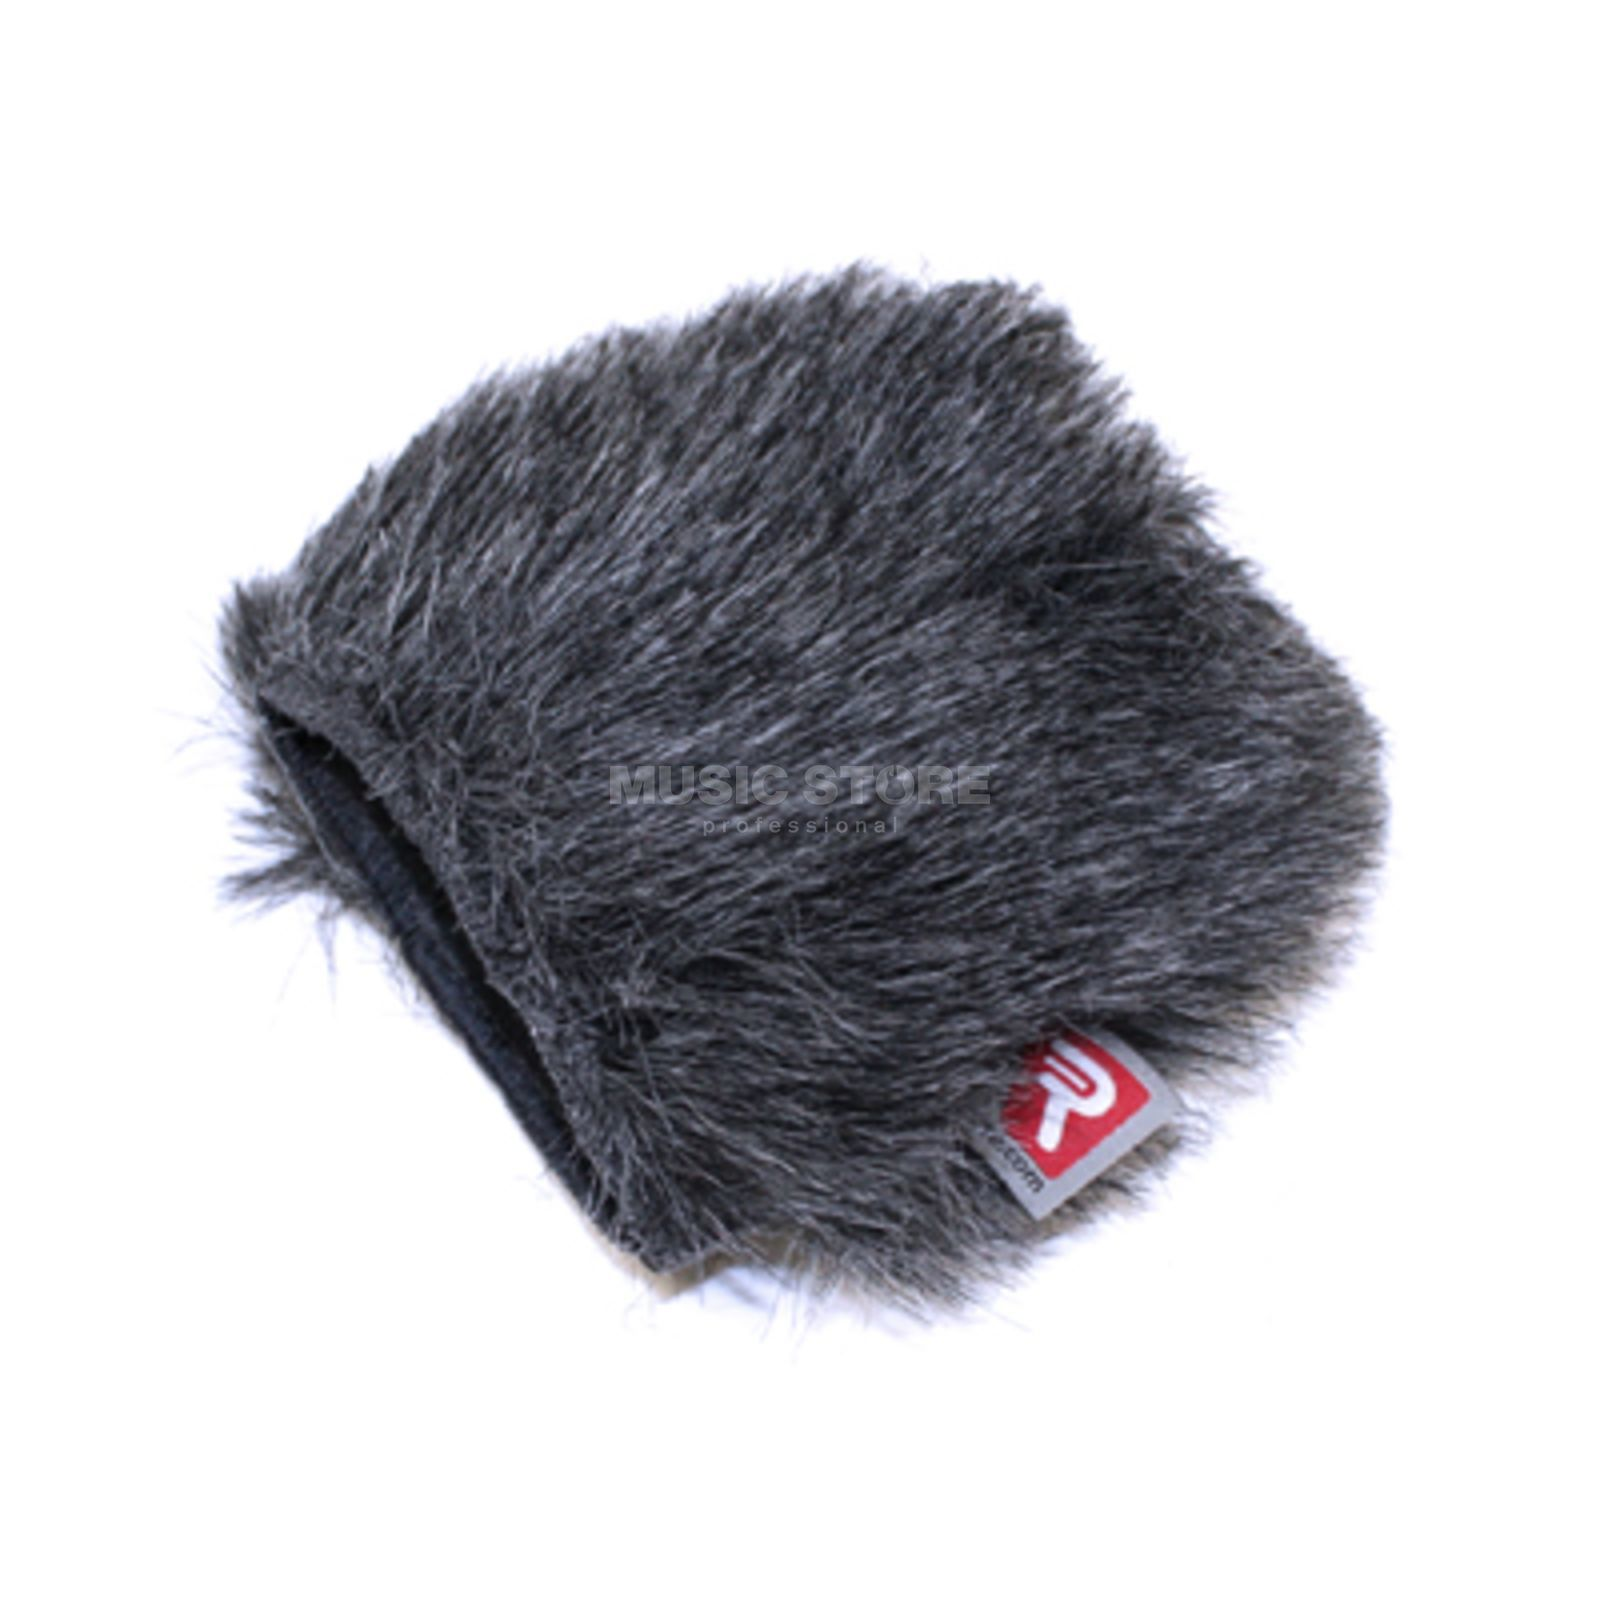 Rycote Windscreen for Tascam DR-40 RY-055423 Produktbillede